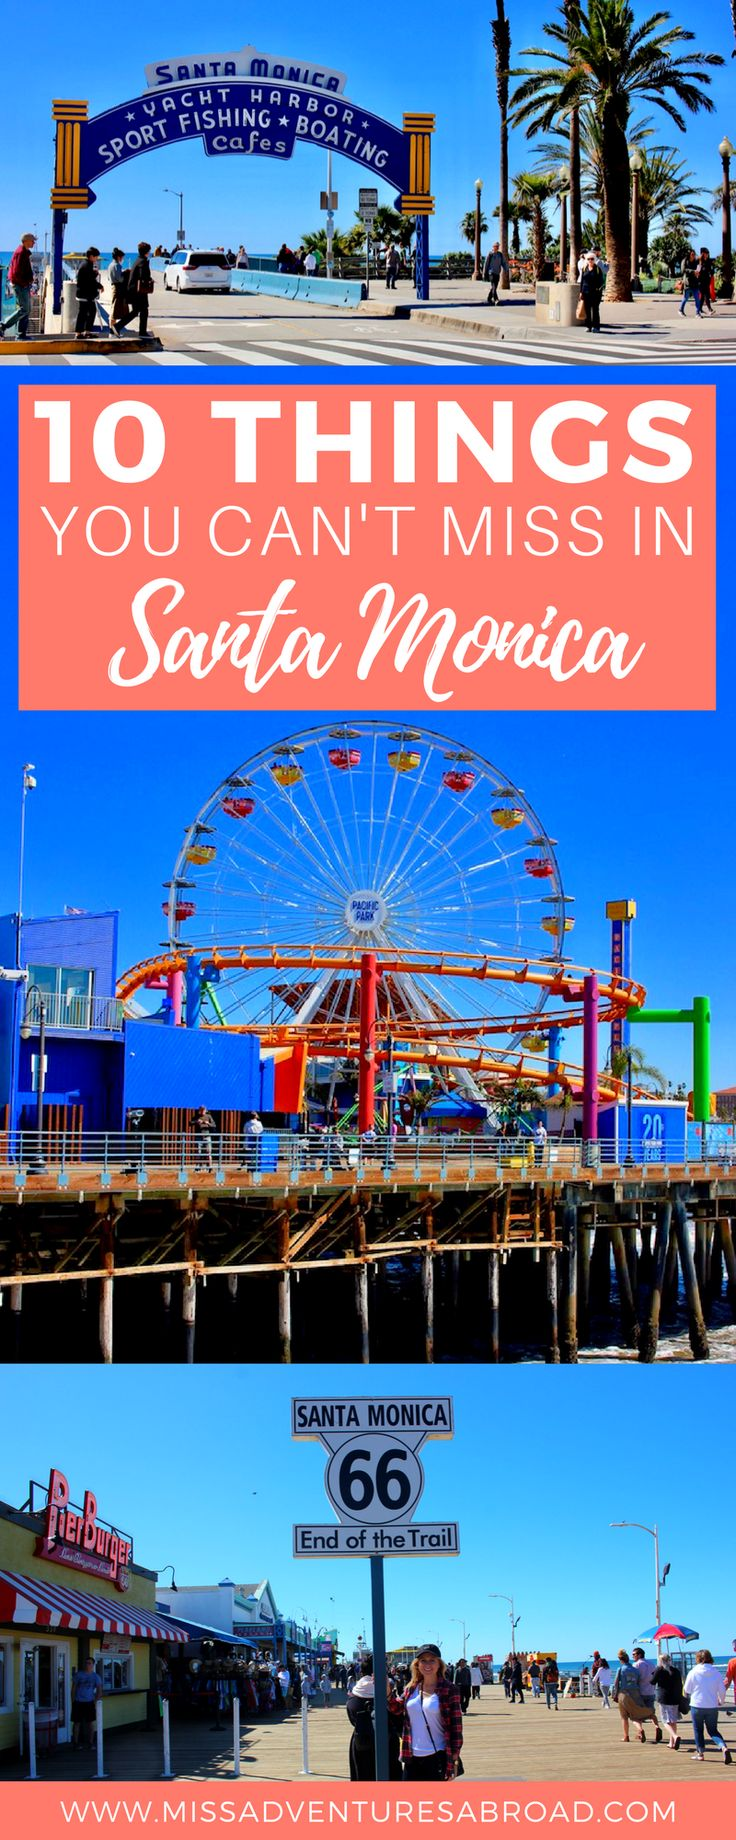 10 Things You Won't Want To Miss In Santa Monica, California · Santa Monica is home to one of California's most famous piers and is definitely worth a visit if you are planning a trip to Los Angeles. Discover the top 10 things to do in Santa Monica from riding the Ferris wheel to exploring the beach and snapping pictures at the official end of the historic Route 66! You'll fall in love with this lively and colorful beach city!